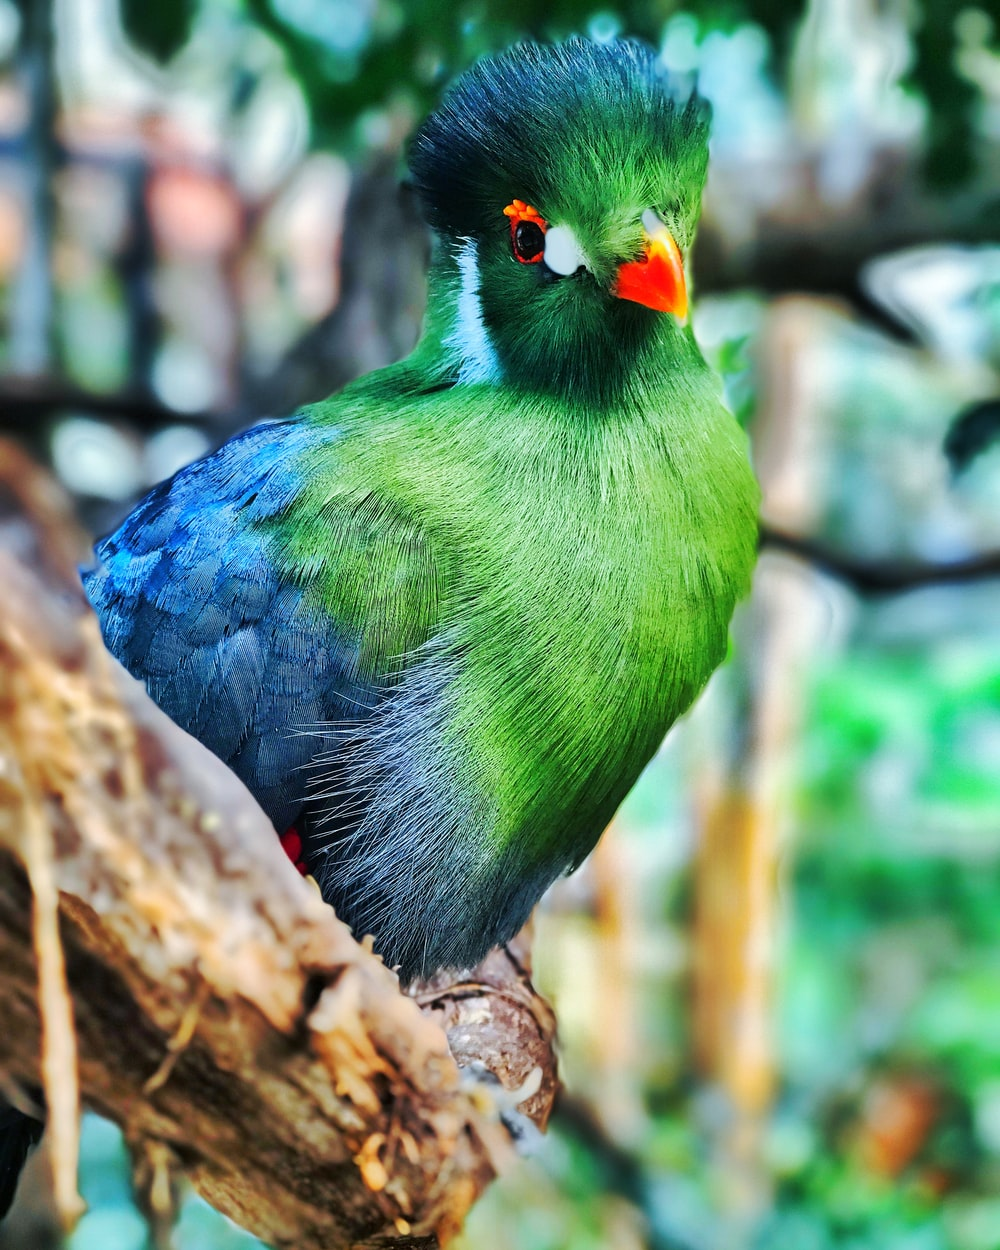 selective focus photography of green bird perched on brown tree branch